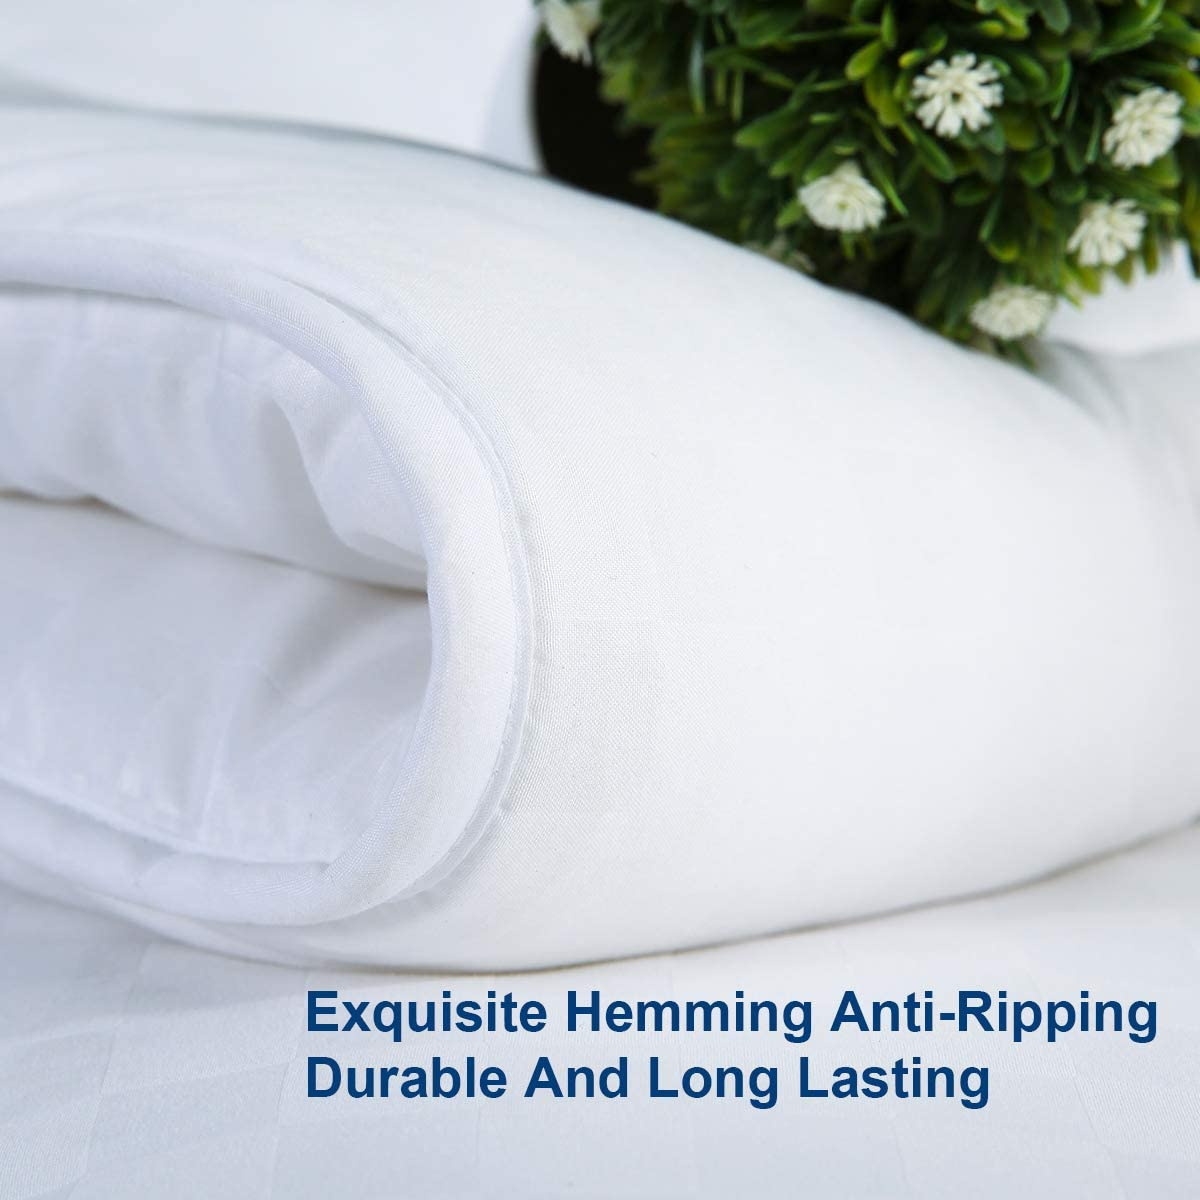 Quilted Duvet Insert with 300GSM Plush Microfiber Fill and Corner Tabs,Machine Washable,White,King White Down Alternative Comforter,Hypoallergenic Lightweight All Season Hotel Bed Comforter